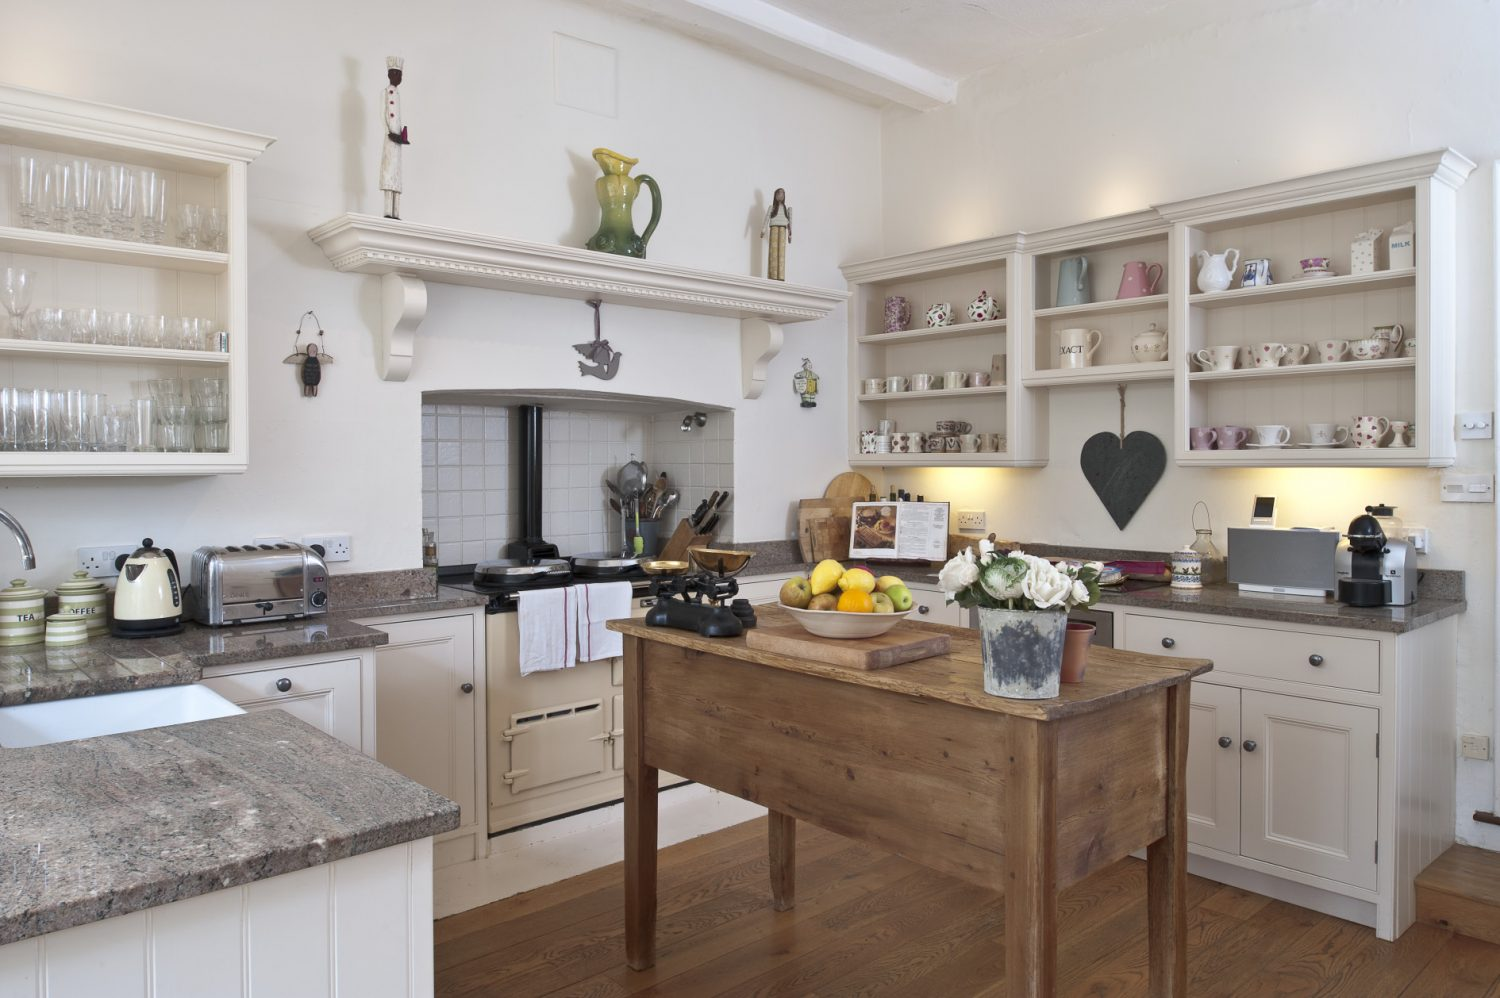 Belinda particularly likes the open shelves in the kitchen as they are a way of adding colour with crockery and reflecting light off the glass